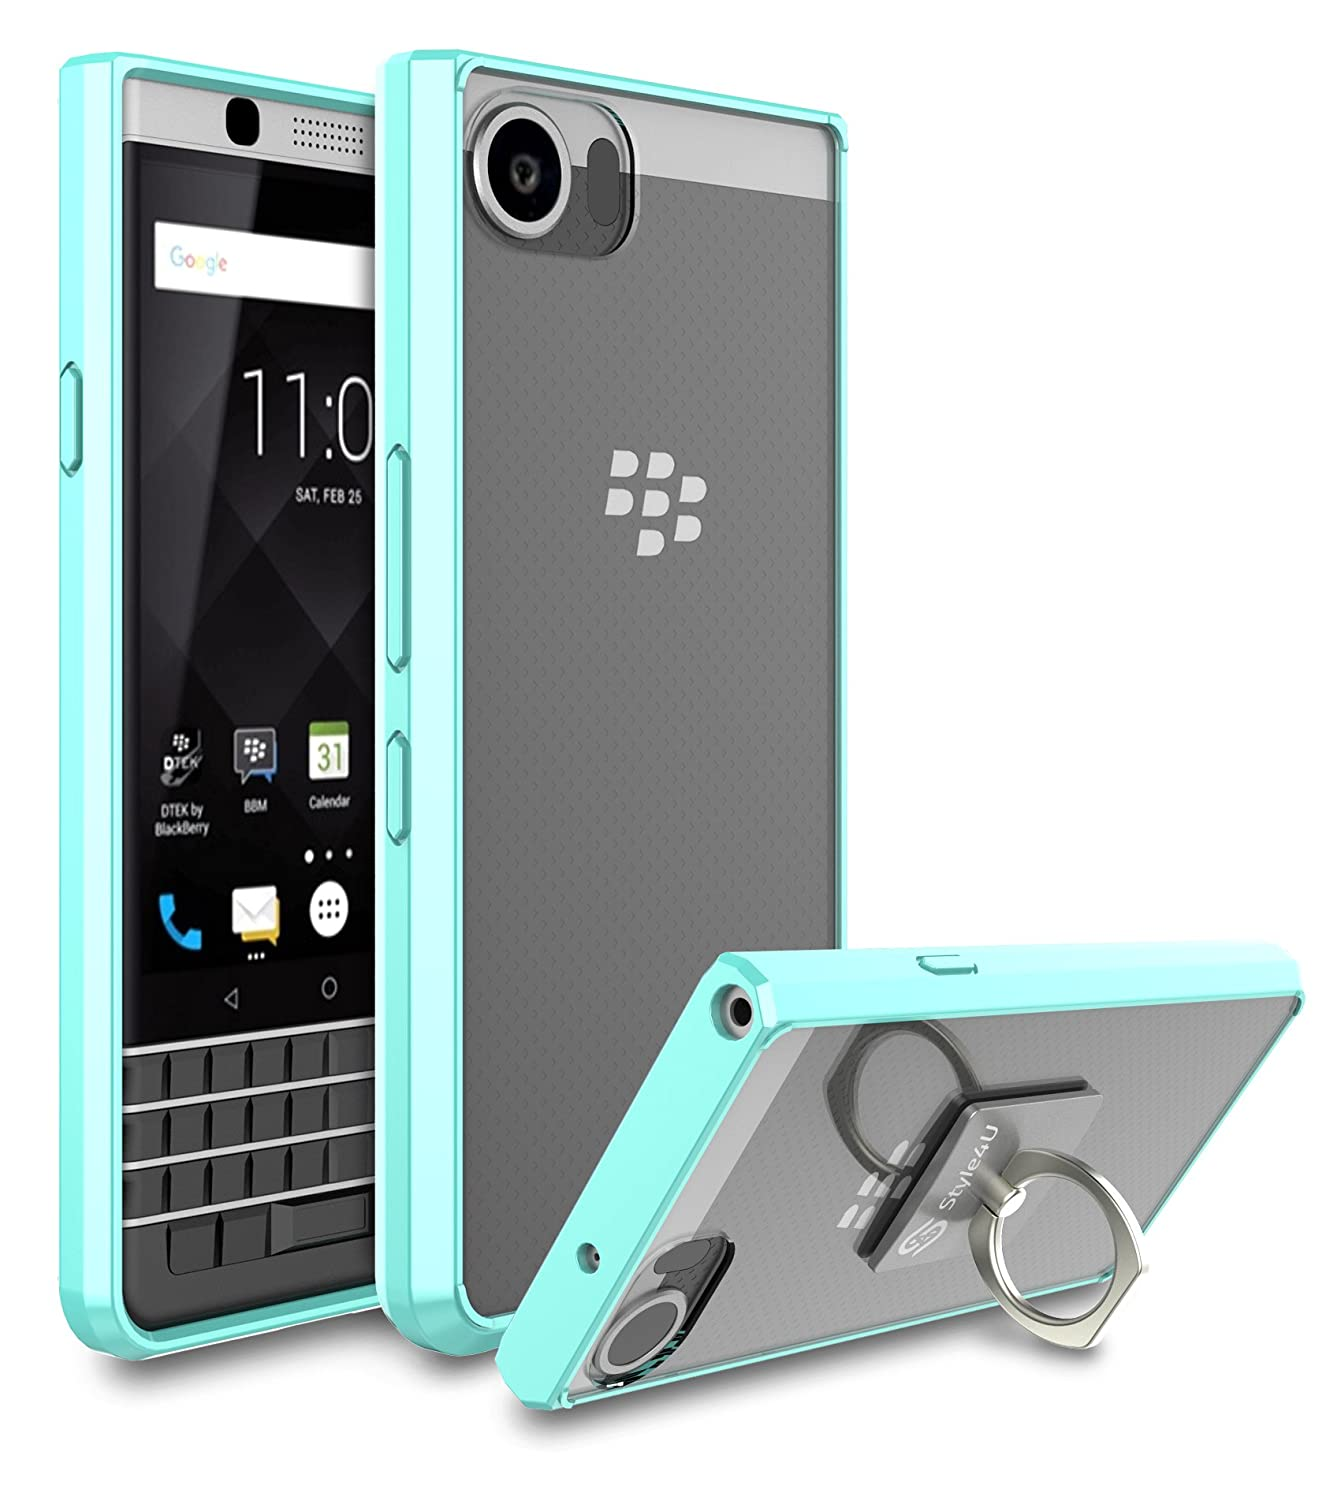 Amazon.com: BlackBerry KEYone Case, BlackBerry DTEK70 / Mercury Case,  Style4U Scratch Resistant Shock Absorbent Ultra Slim Crystal Clear PC Back  TPU Bumper ...